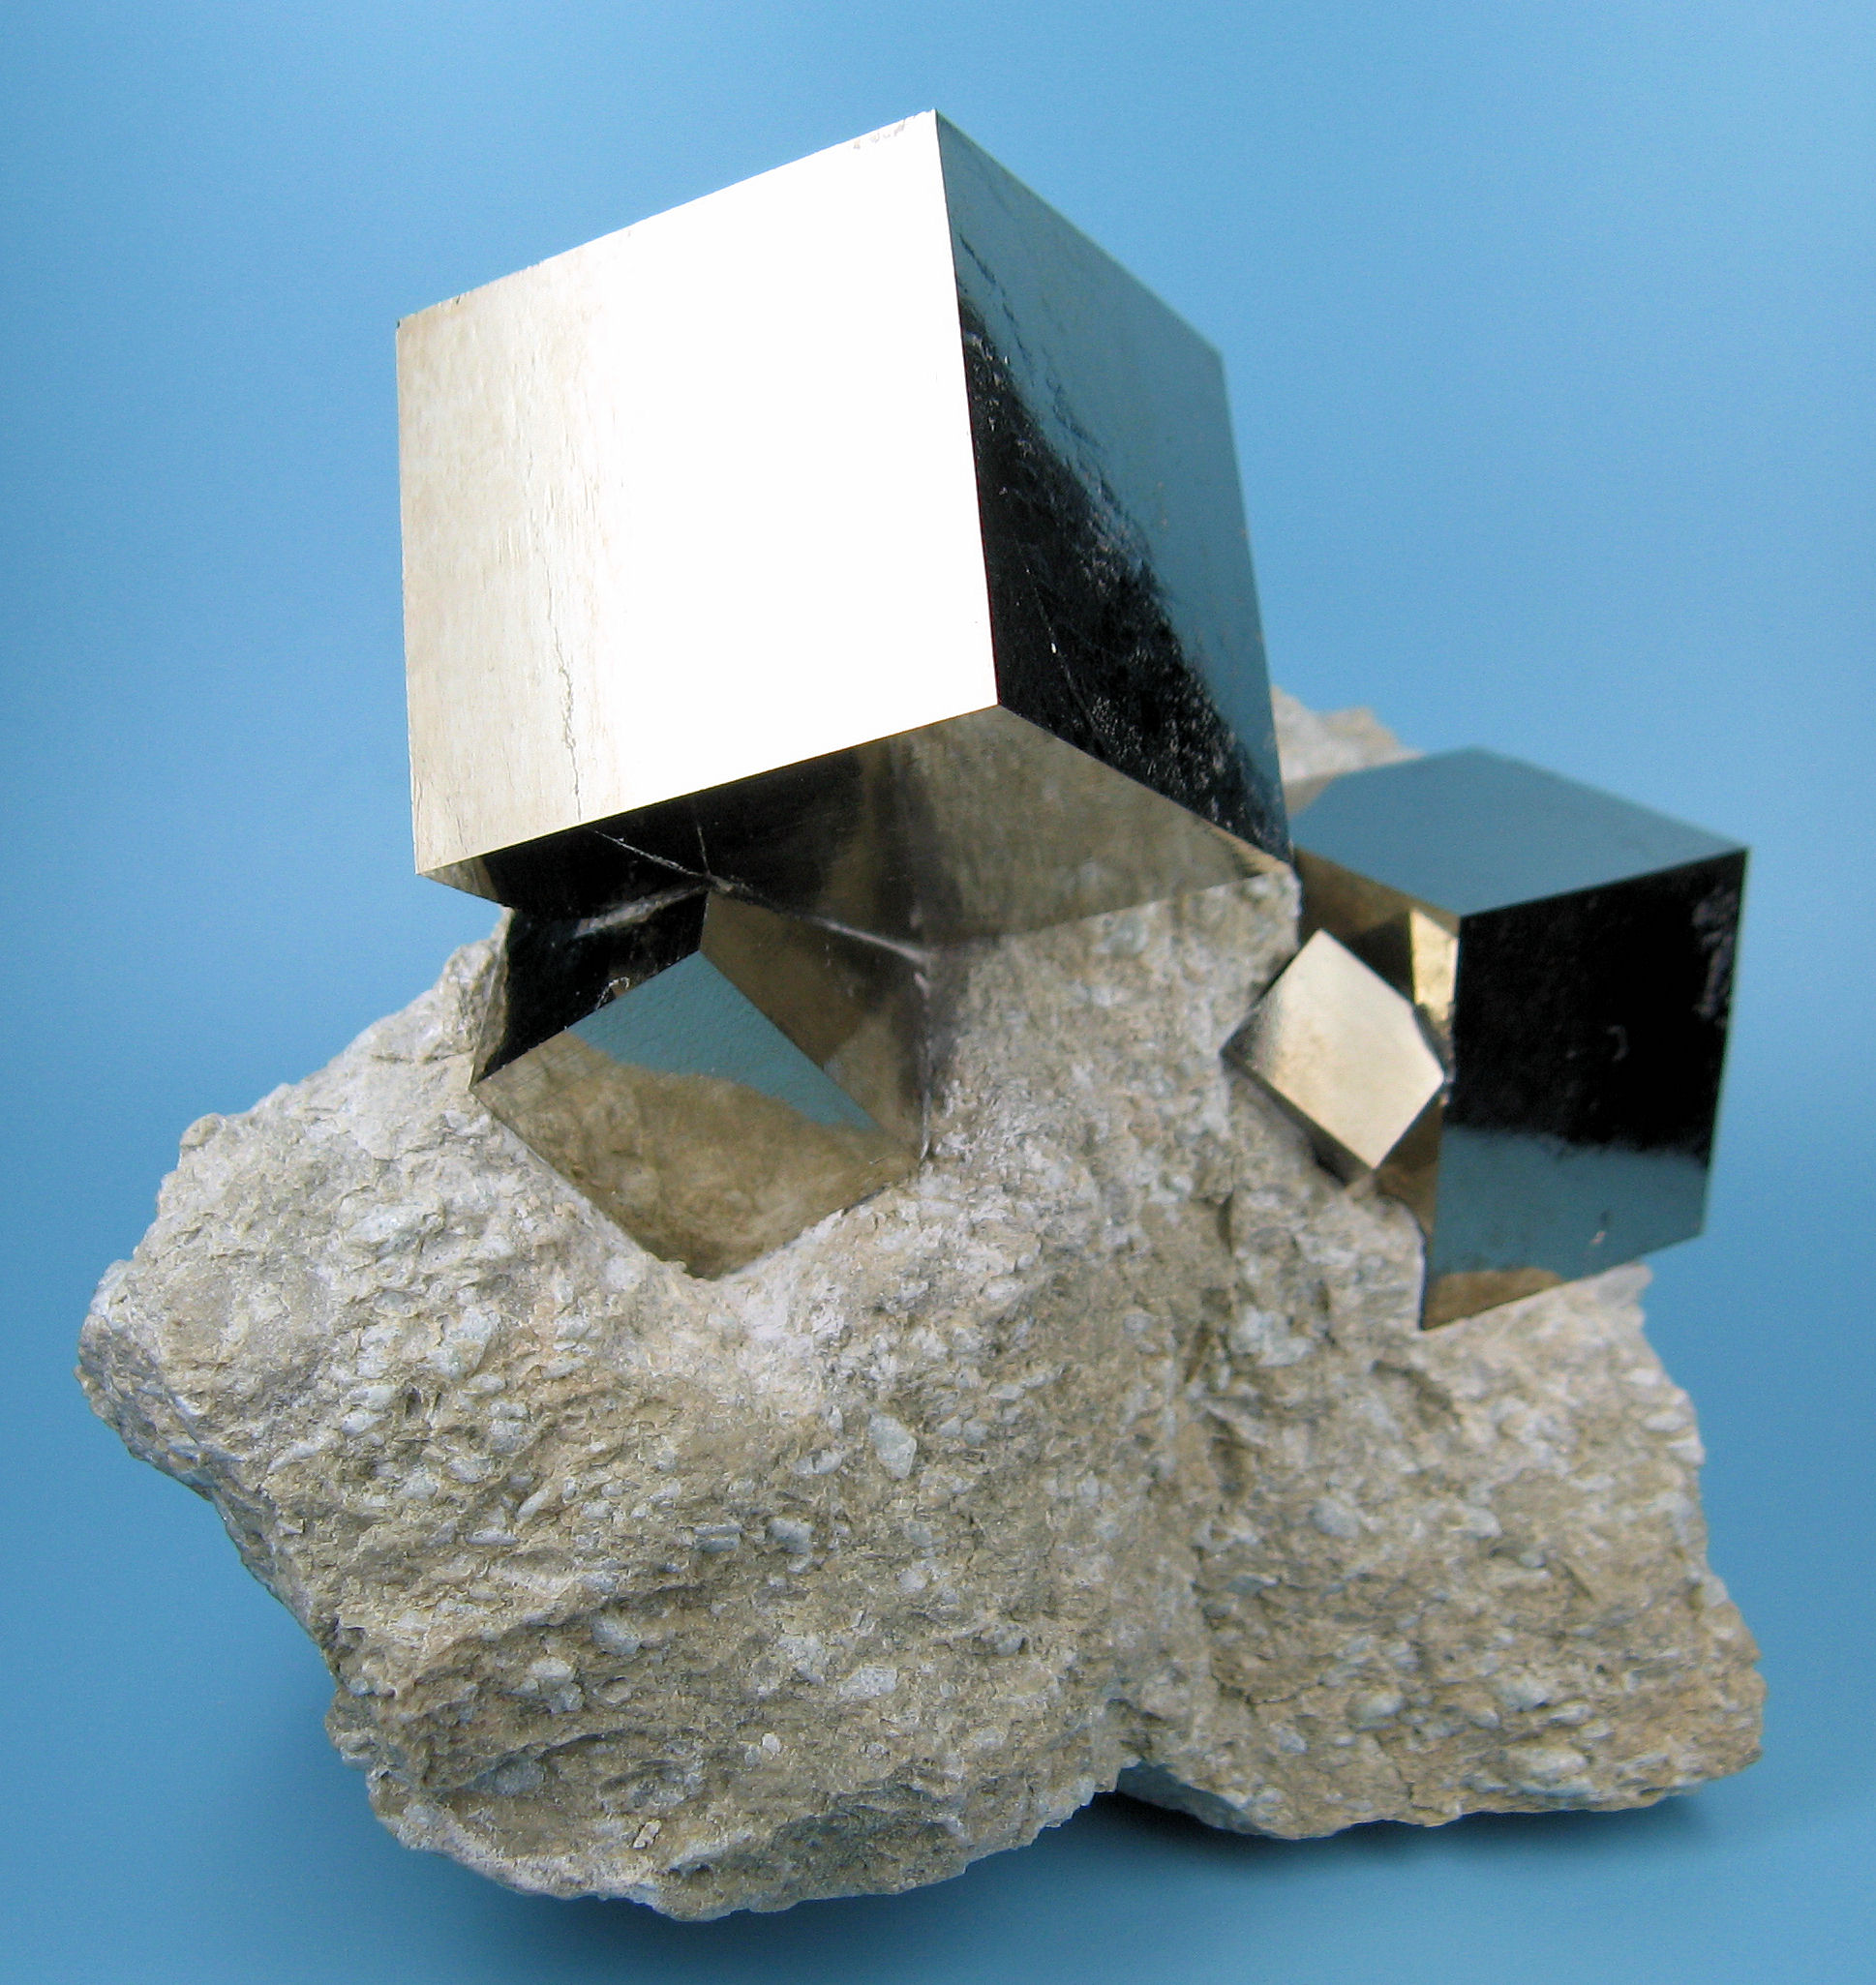 https://upload.wikimedia.org/wikipedia/commons/9/95/2780M-pyrite1.jpg